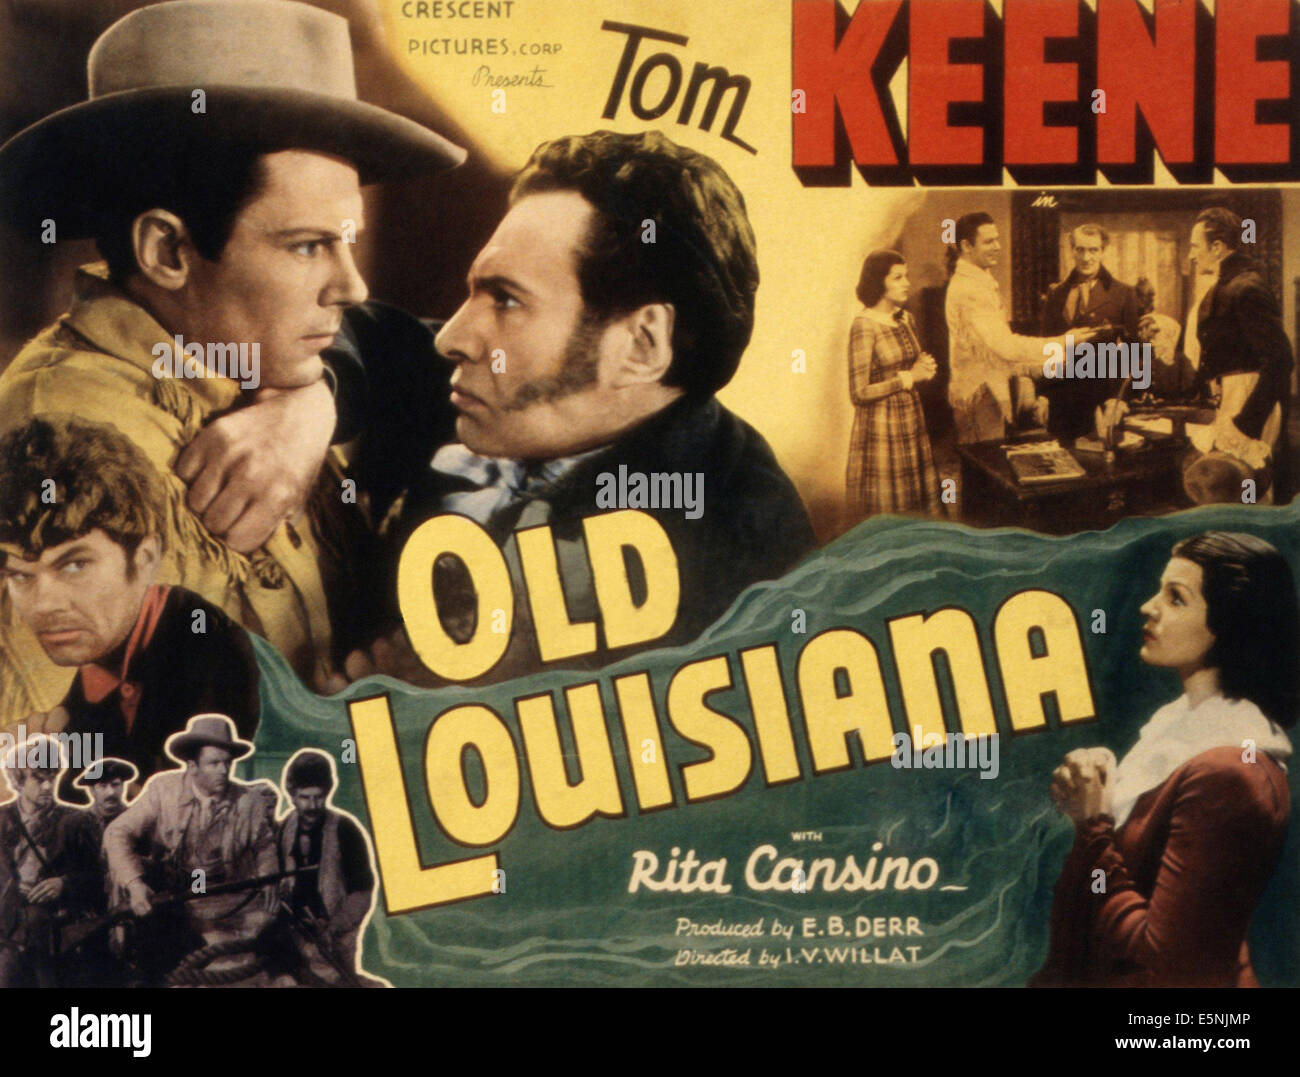 old-louisiana-aka-louisiana-gal-tom-keen